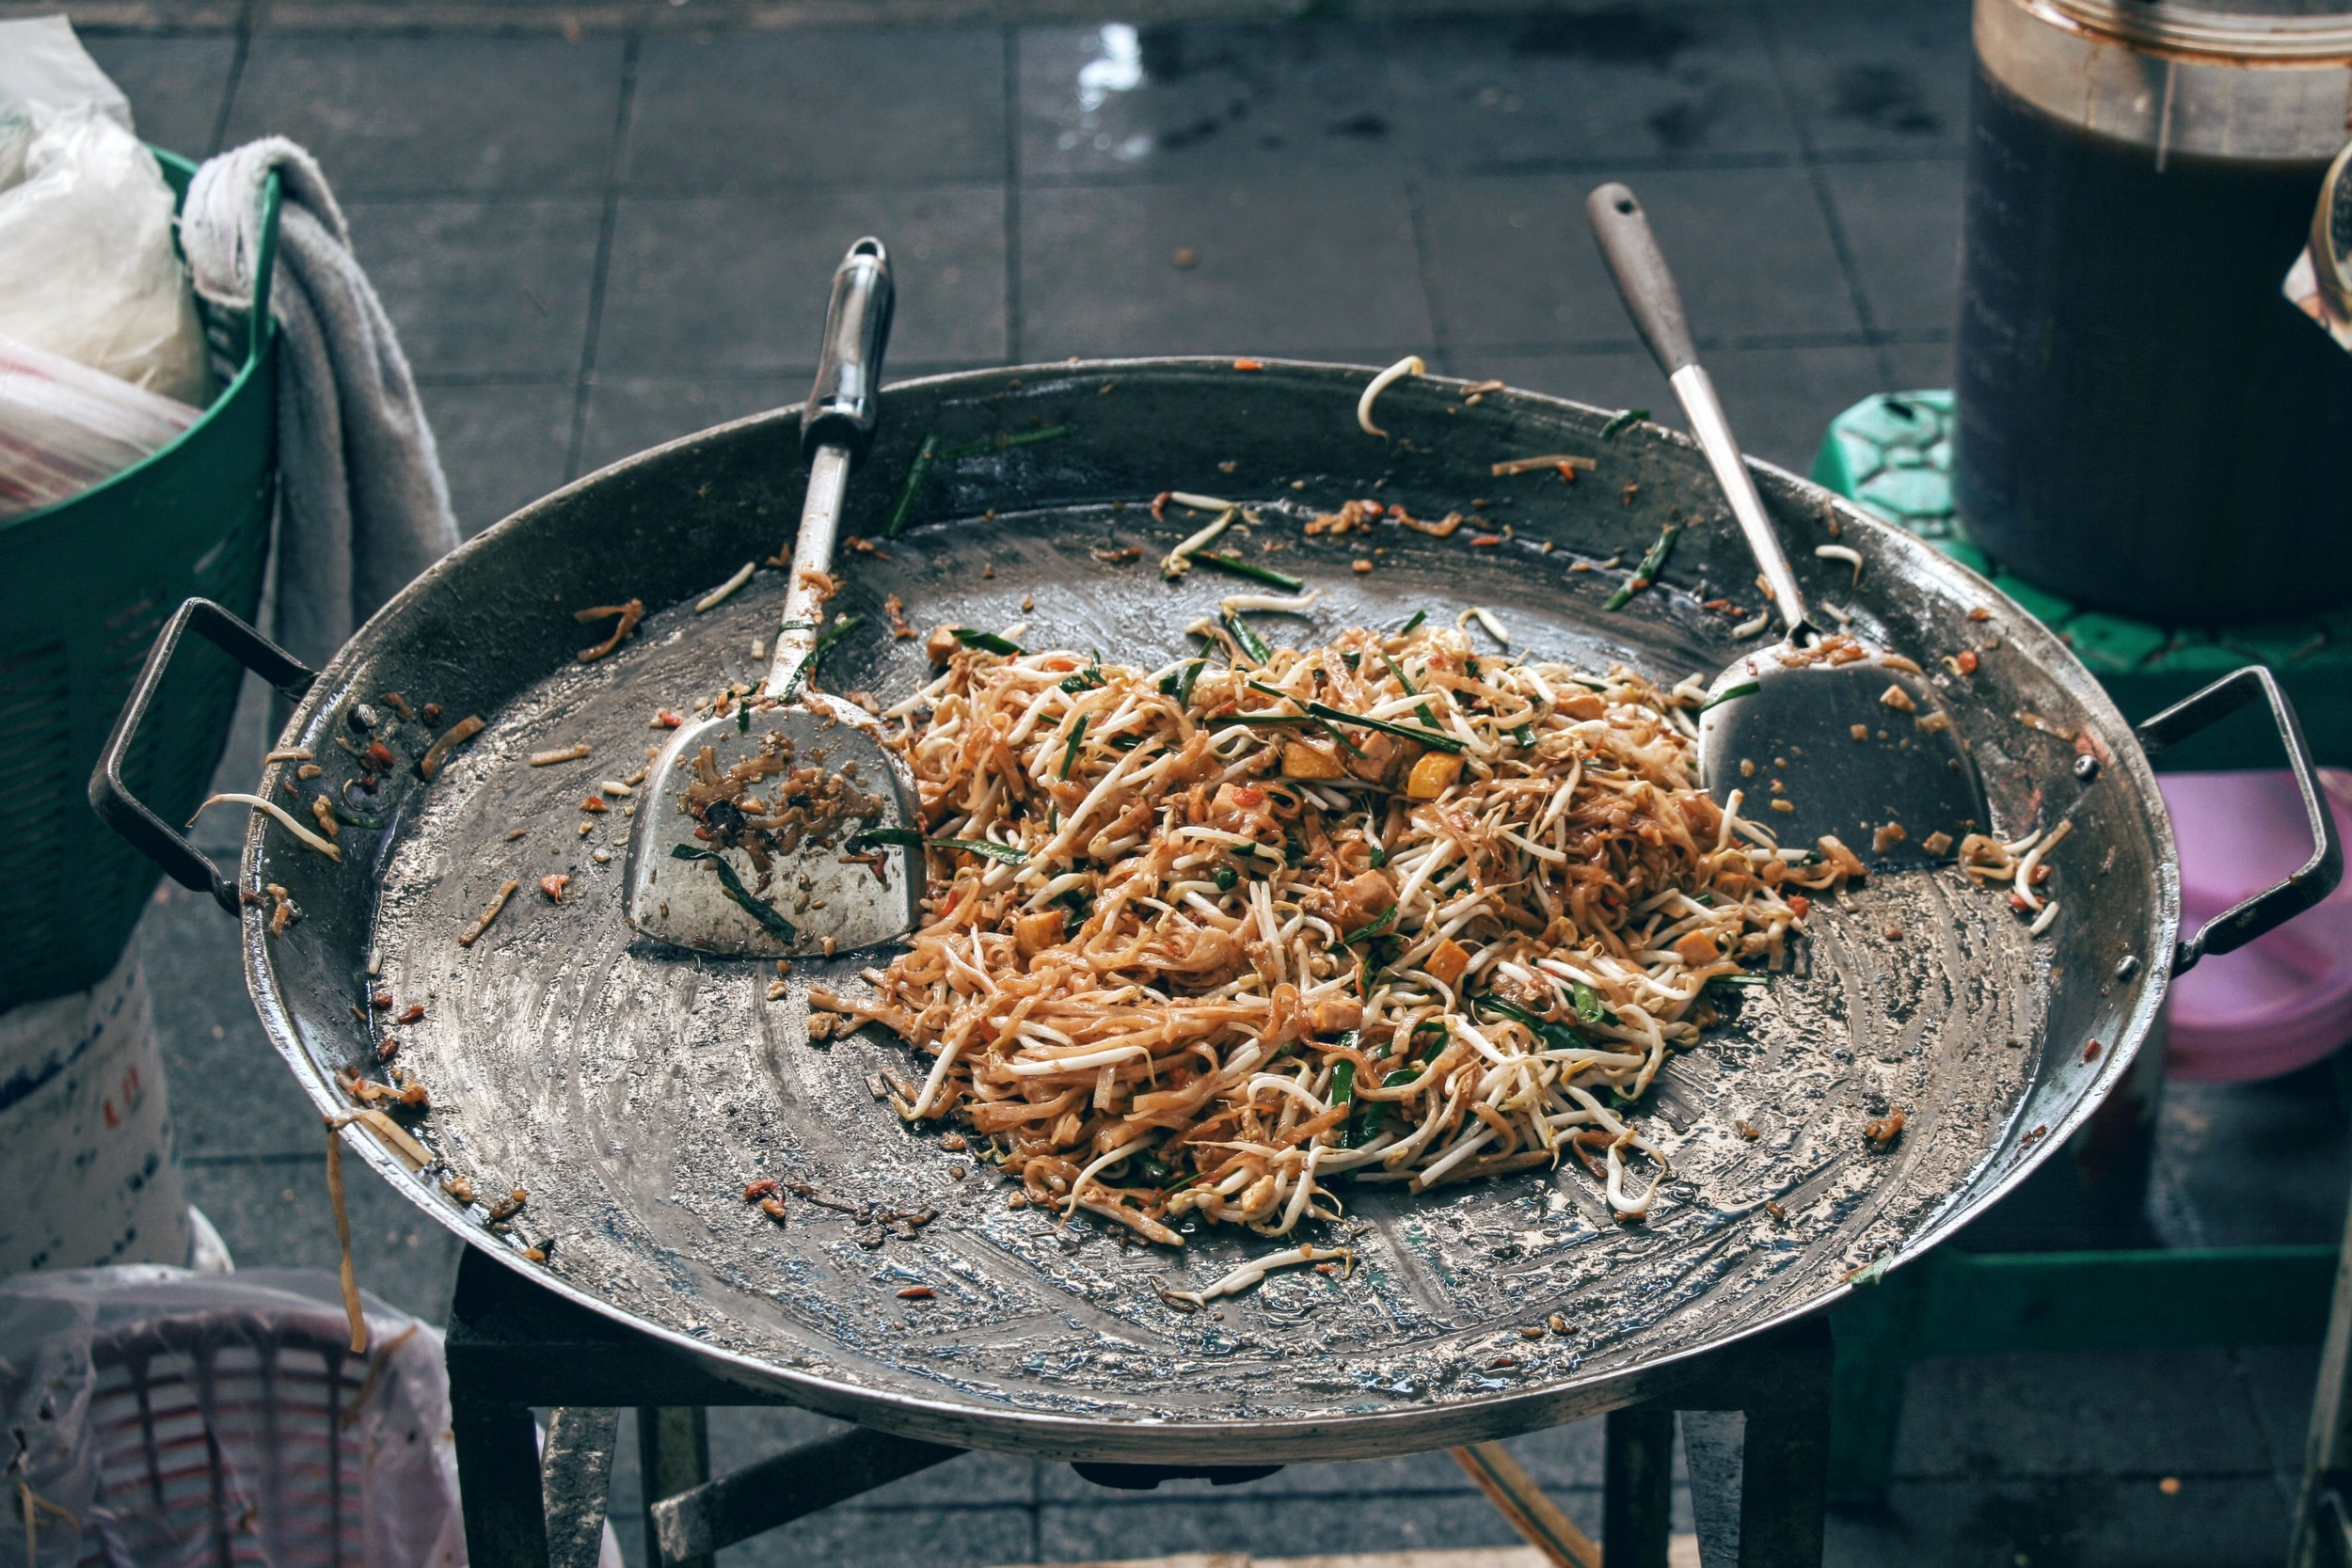 Thailand's signature Pad Thai dish, prepared in an extra large pan right in front of you